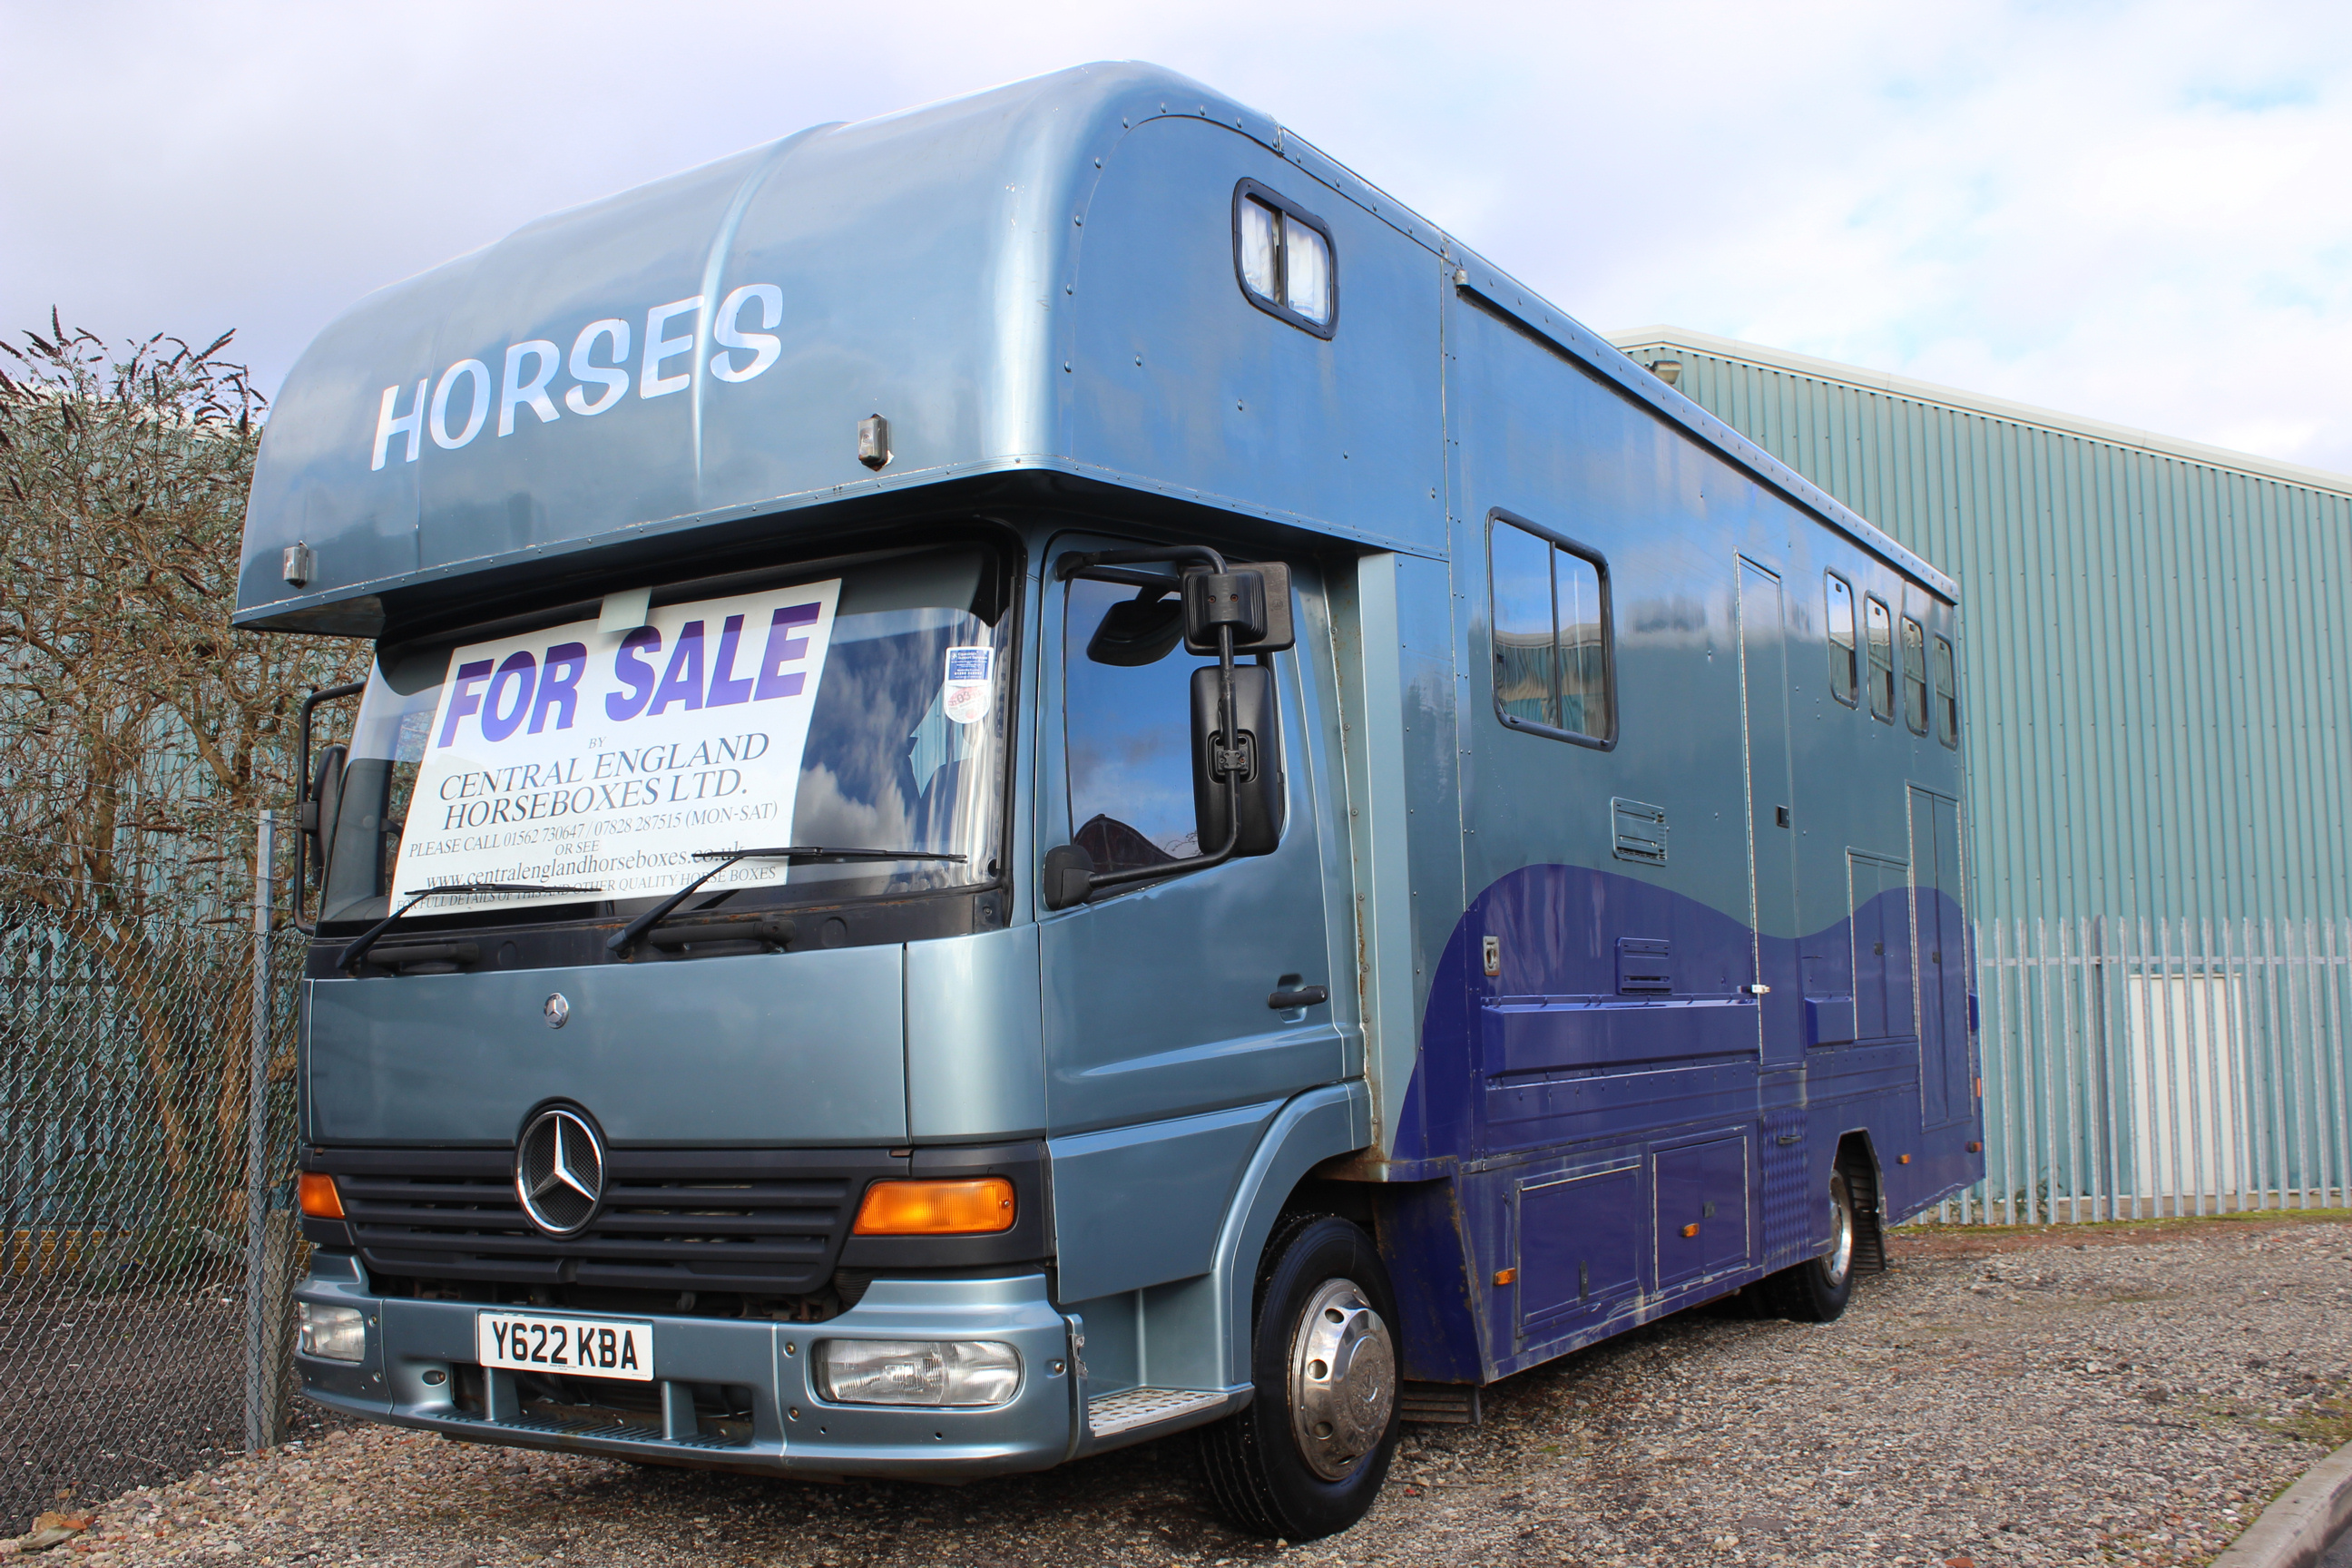 Luxury Mercedes 7 5t Horsebox For Sale Central England Horseboxes